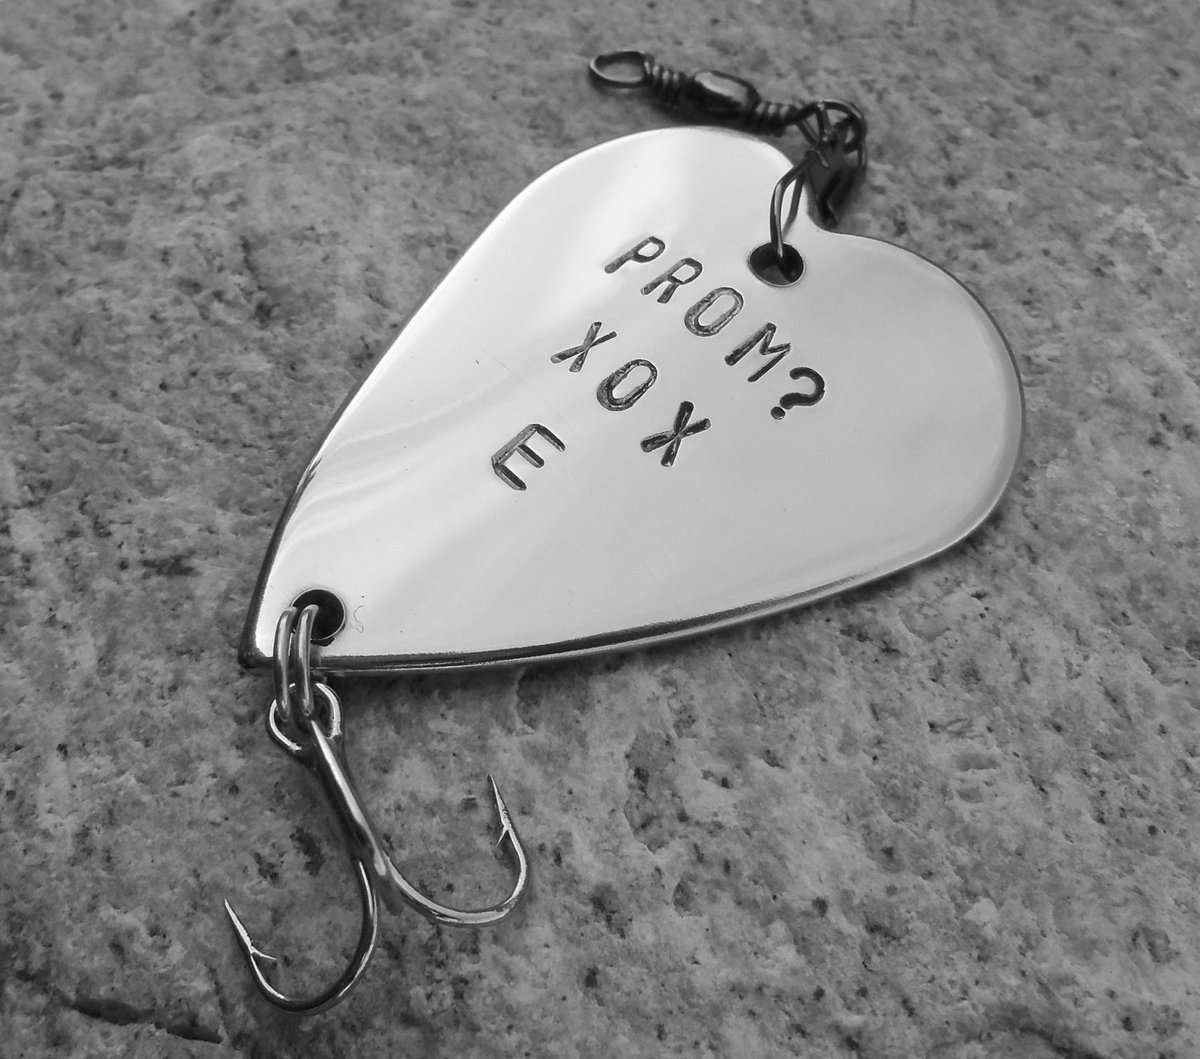 Prom Accessory Will you go to Prom Boyfriend Girlfriend Gift Personalized Fishing Lure for Teens Handstamped Creative Gift for Boy from Girl http://tuppu.net/5b7e9780 #CandTCustomLures #Shopify #For_teens